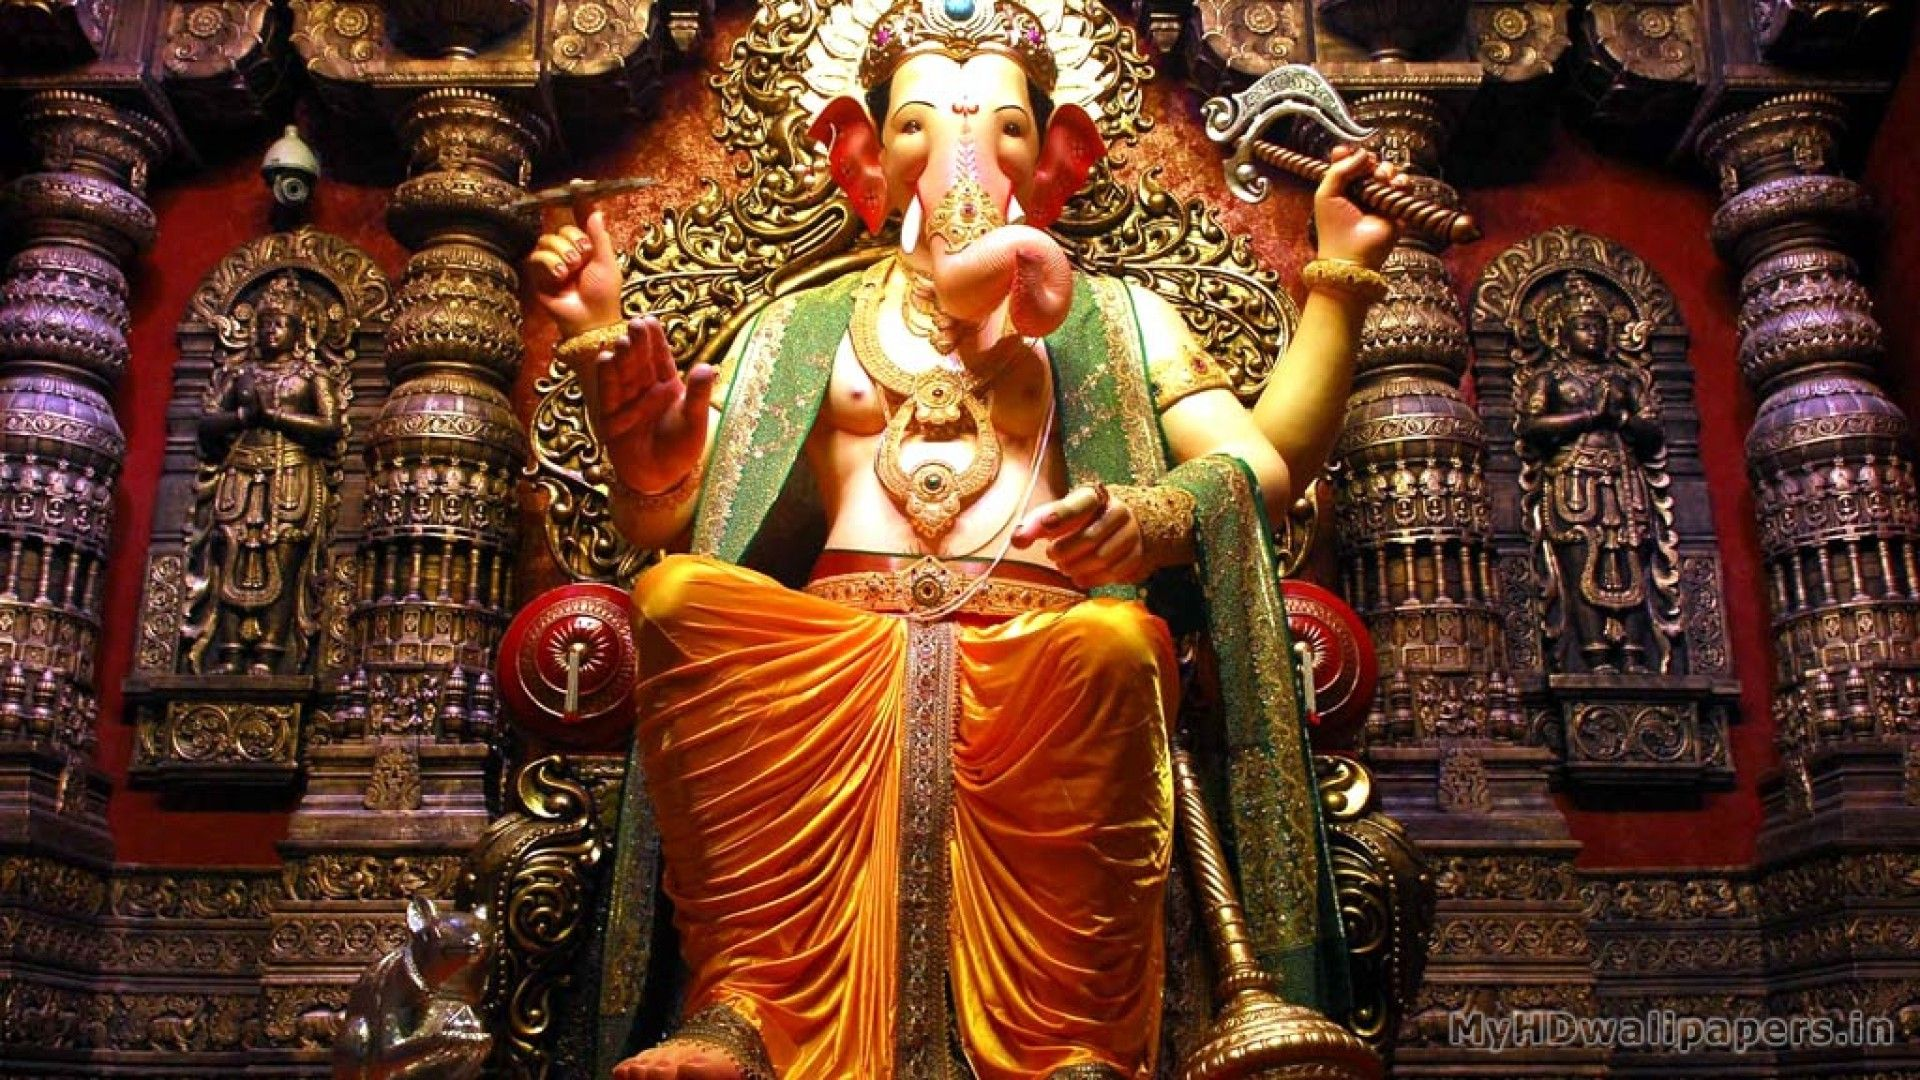 Click here to download in HD Format >> Lalbaugcha Raja